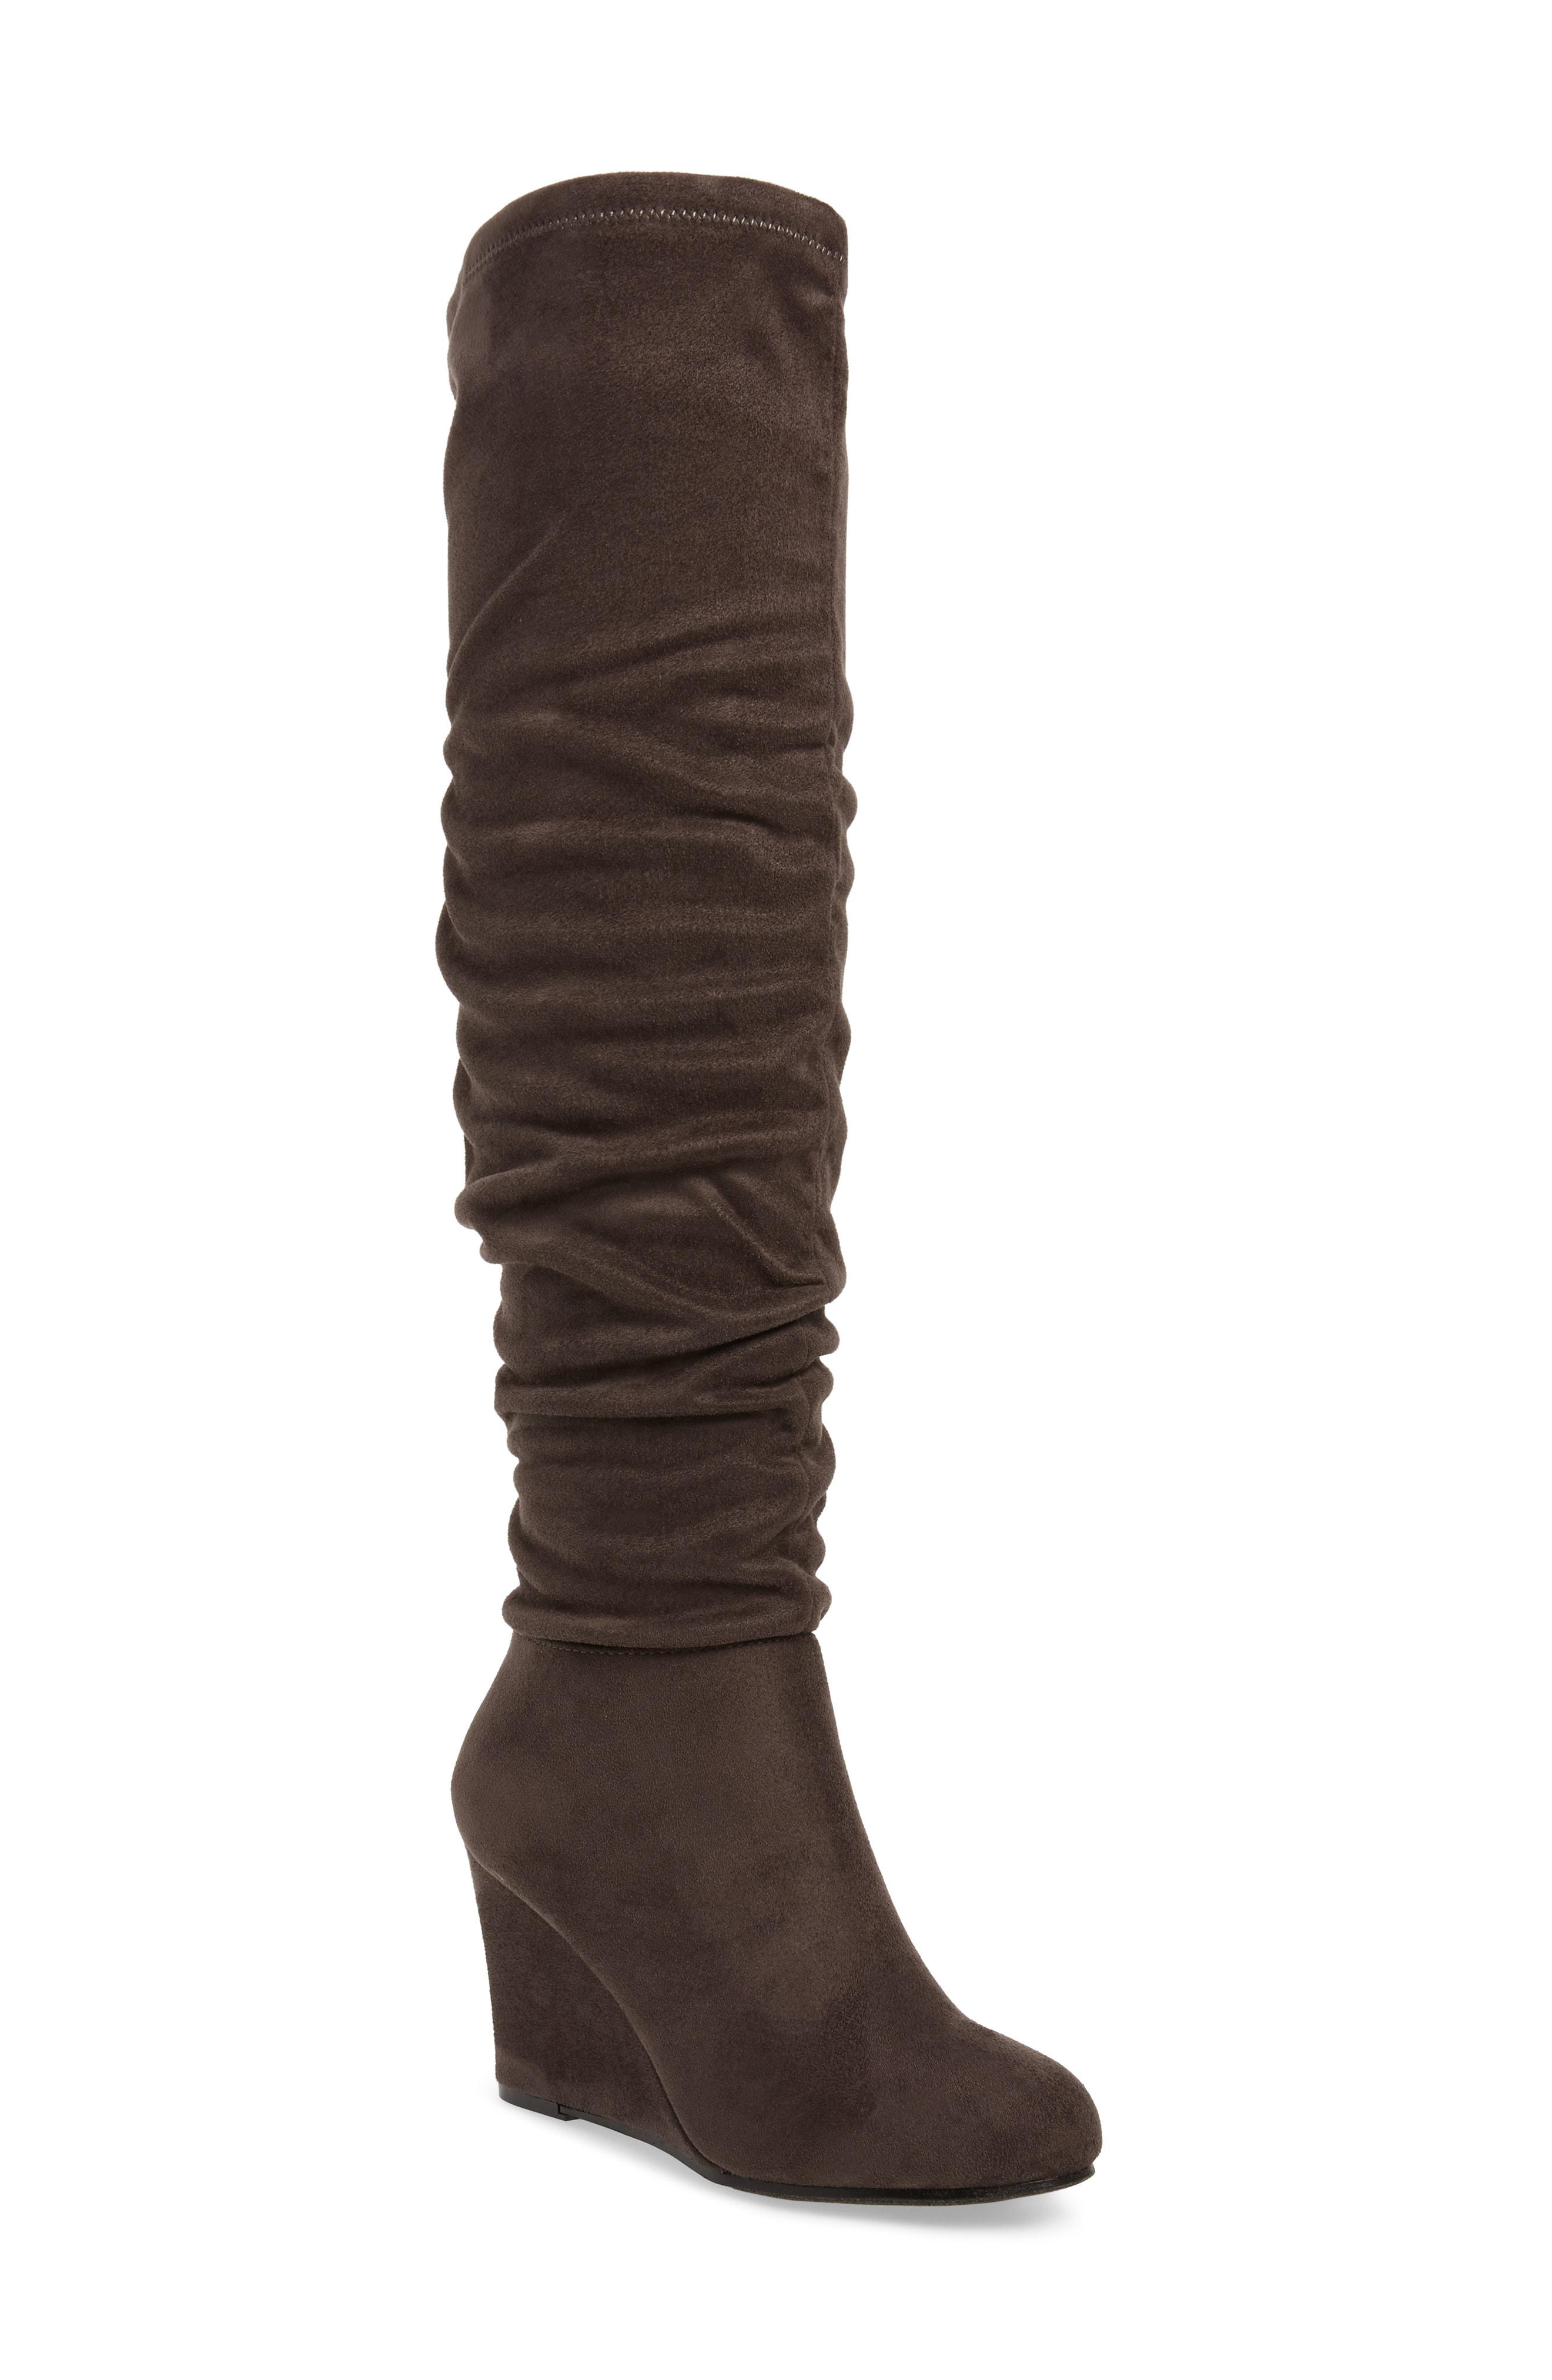 79427e53ea2 Lyst - Chinese Laundry Uma Over The Knee Boot in Brown